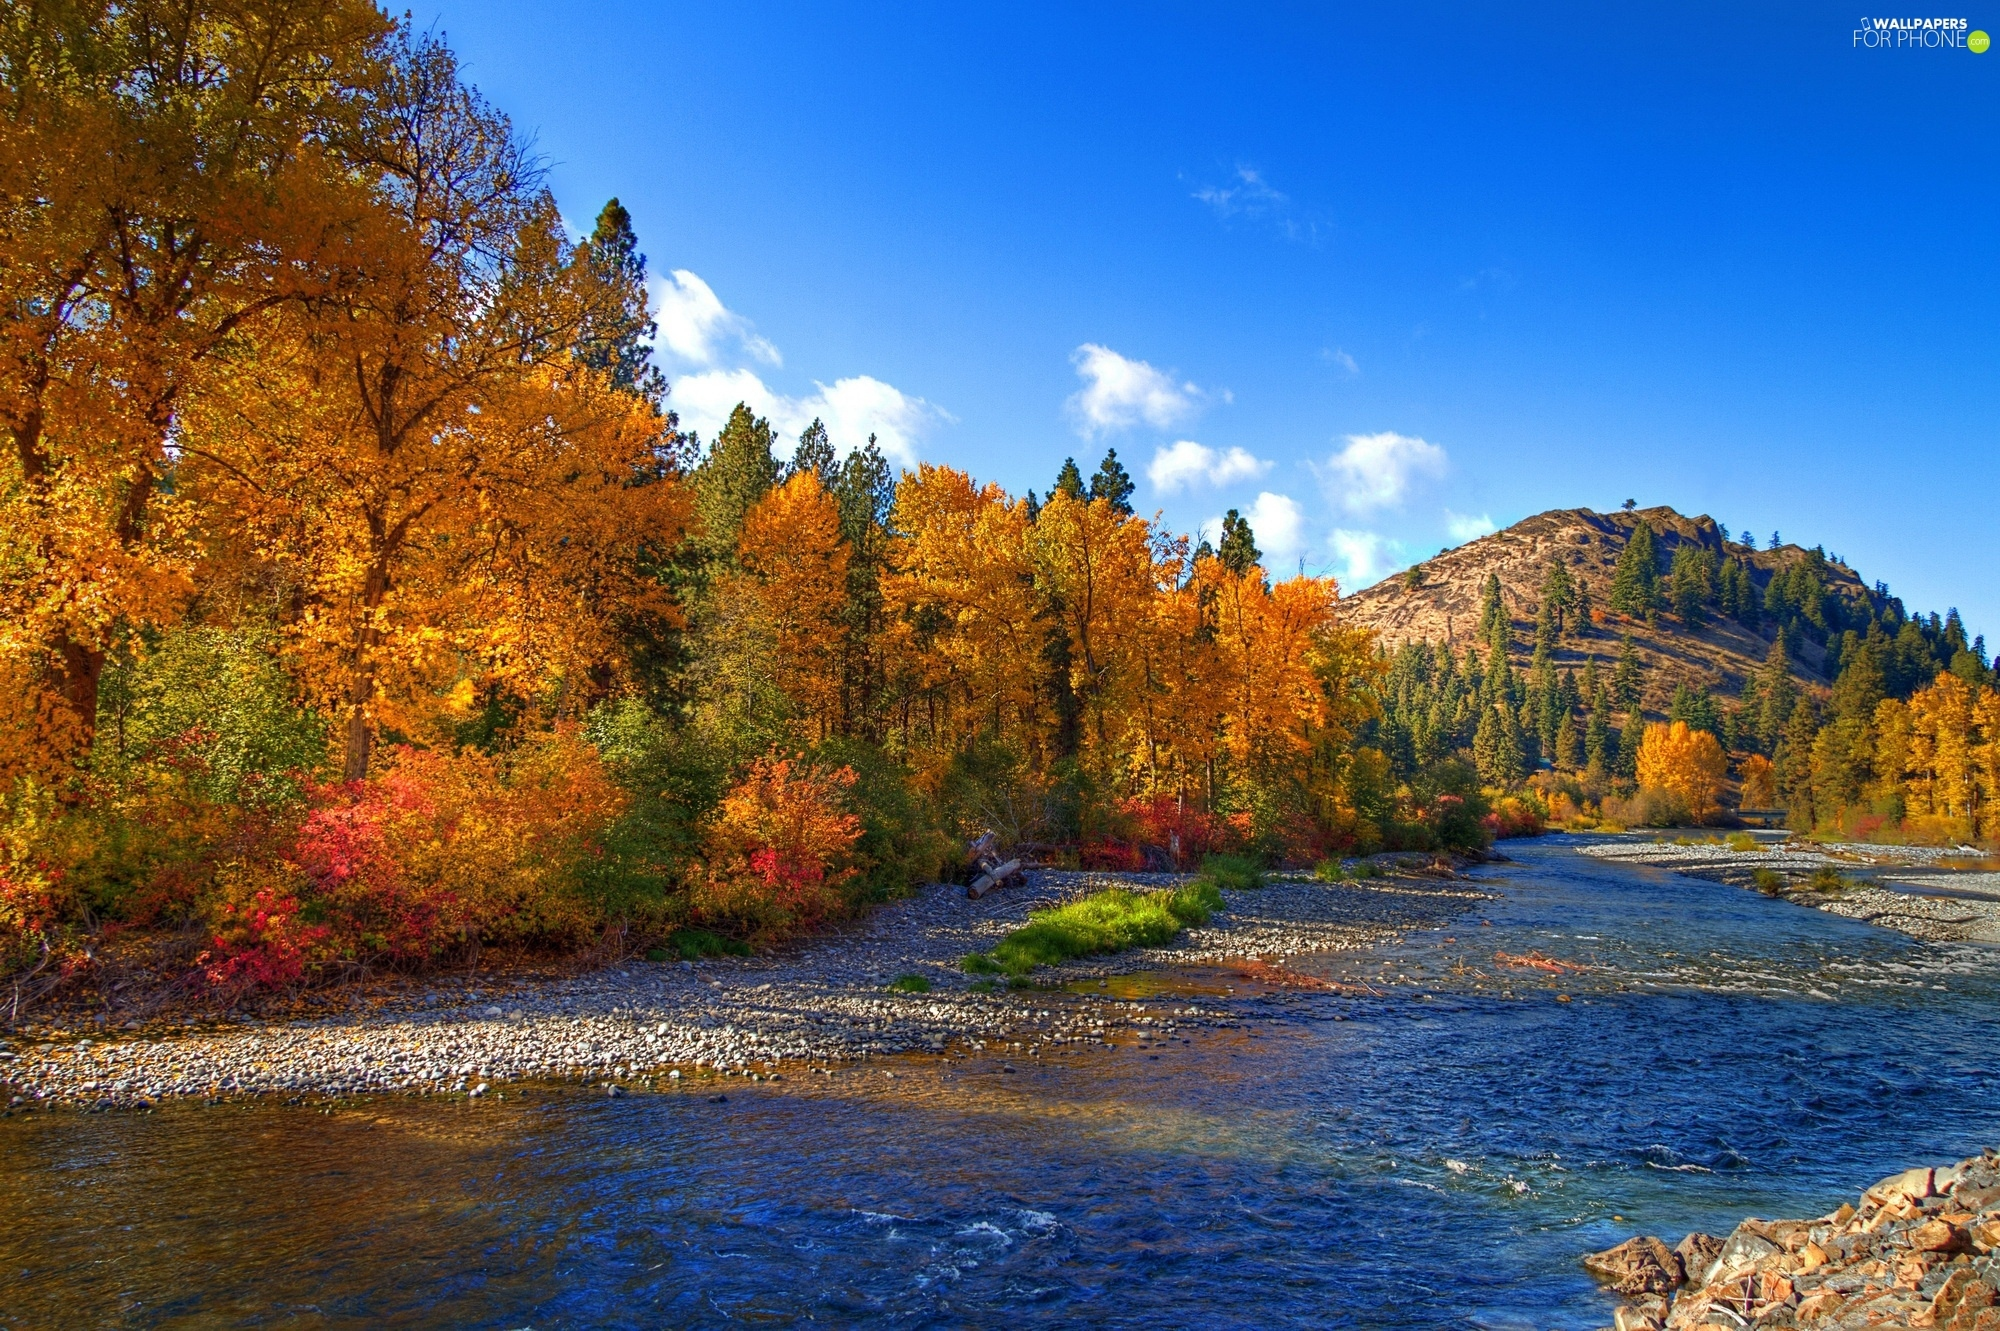 Hill, autumn, River